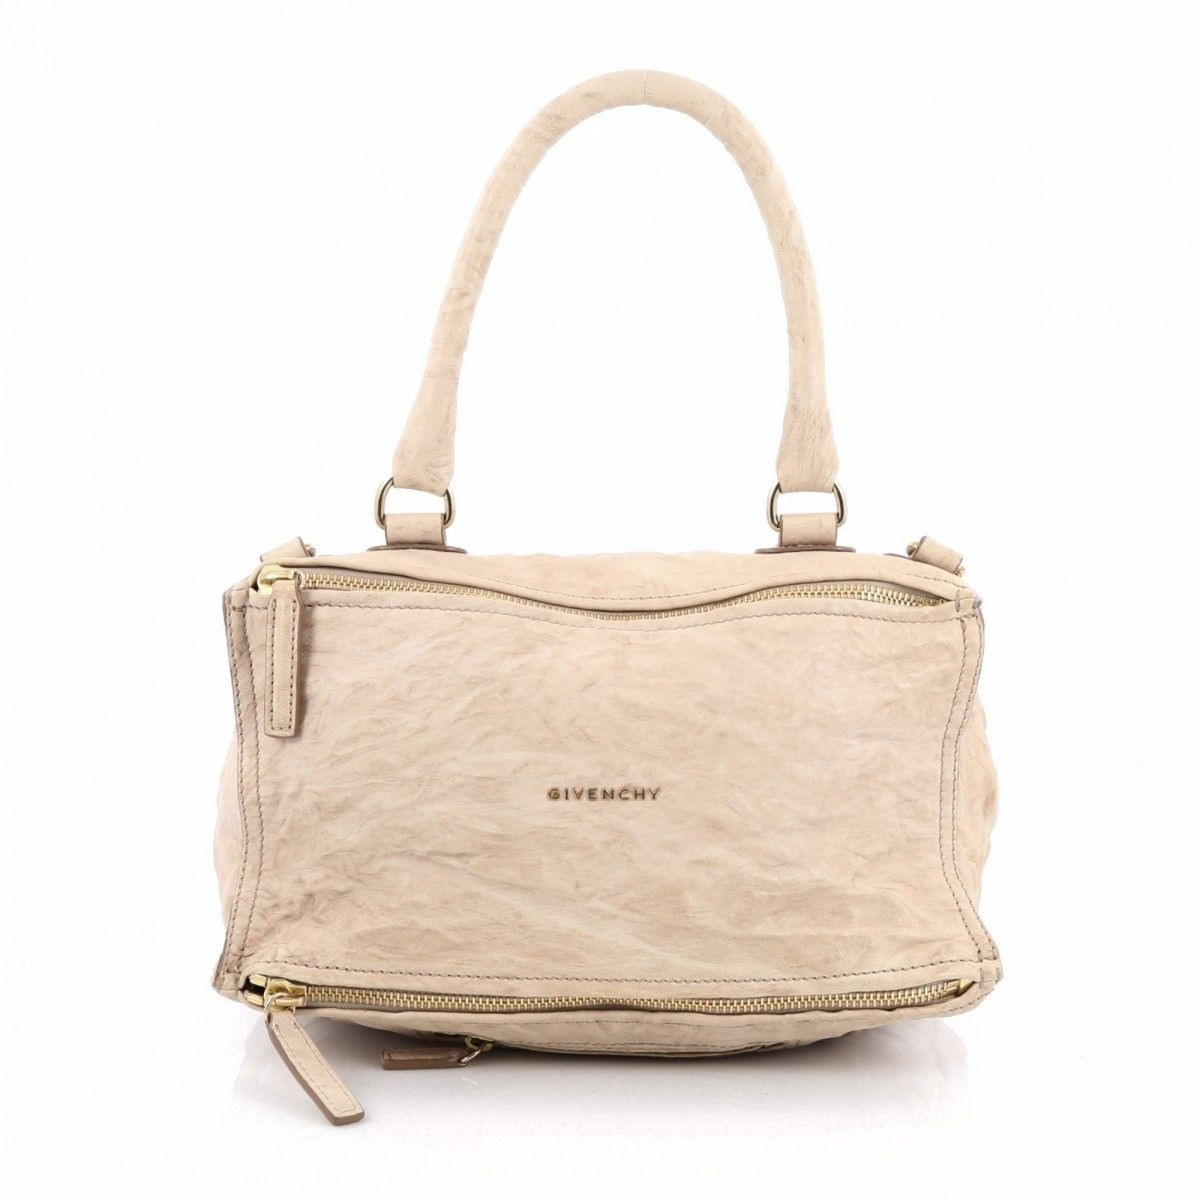 Givenchy Pre-owned - Beige Leather Handbag Pandora